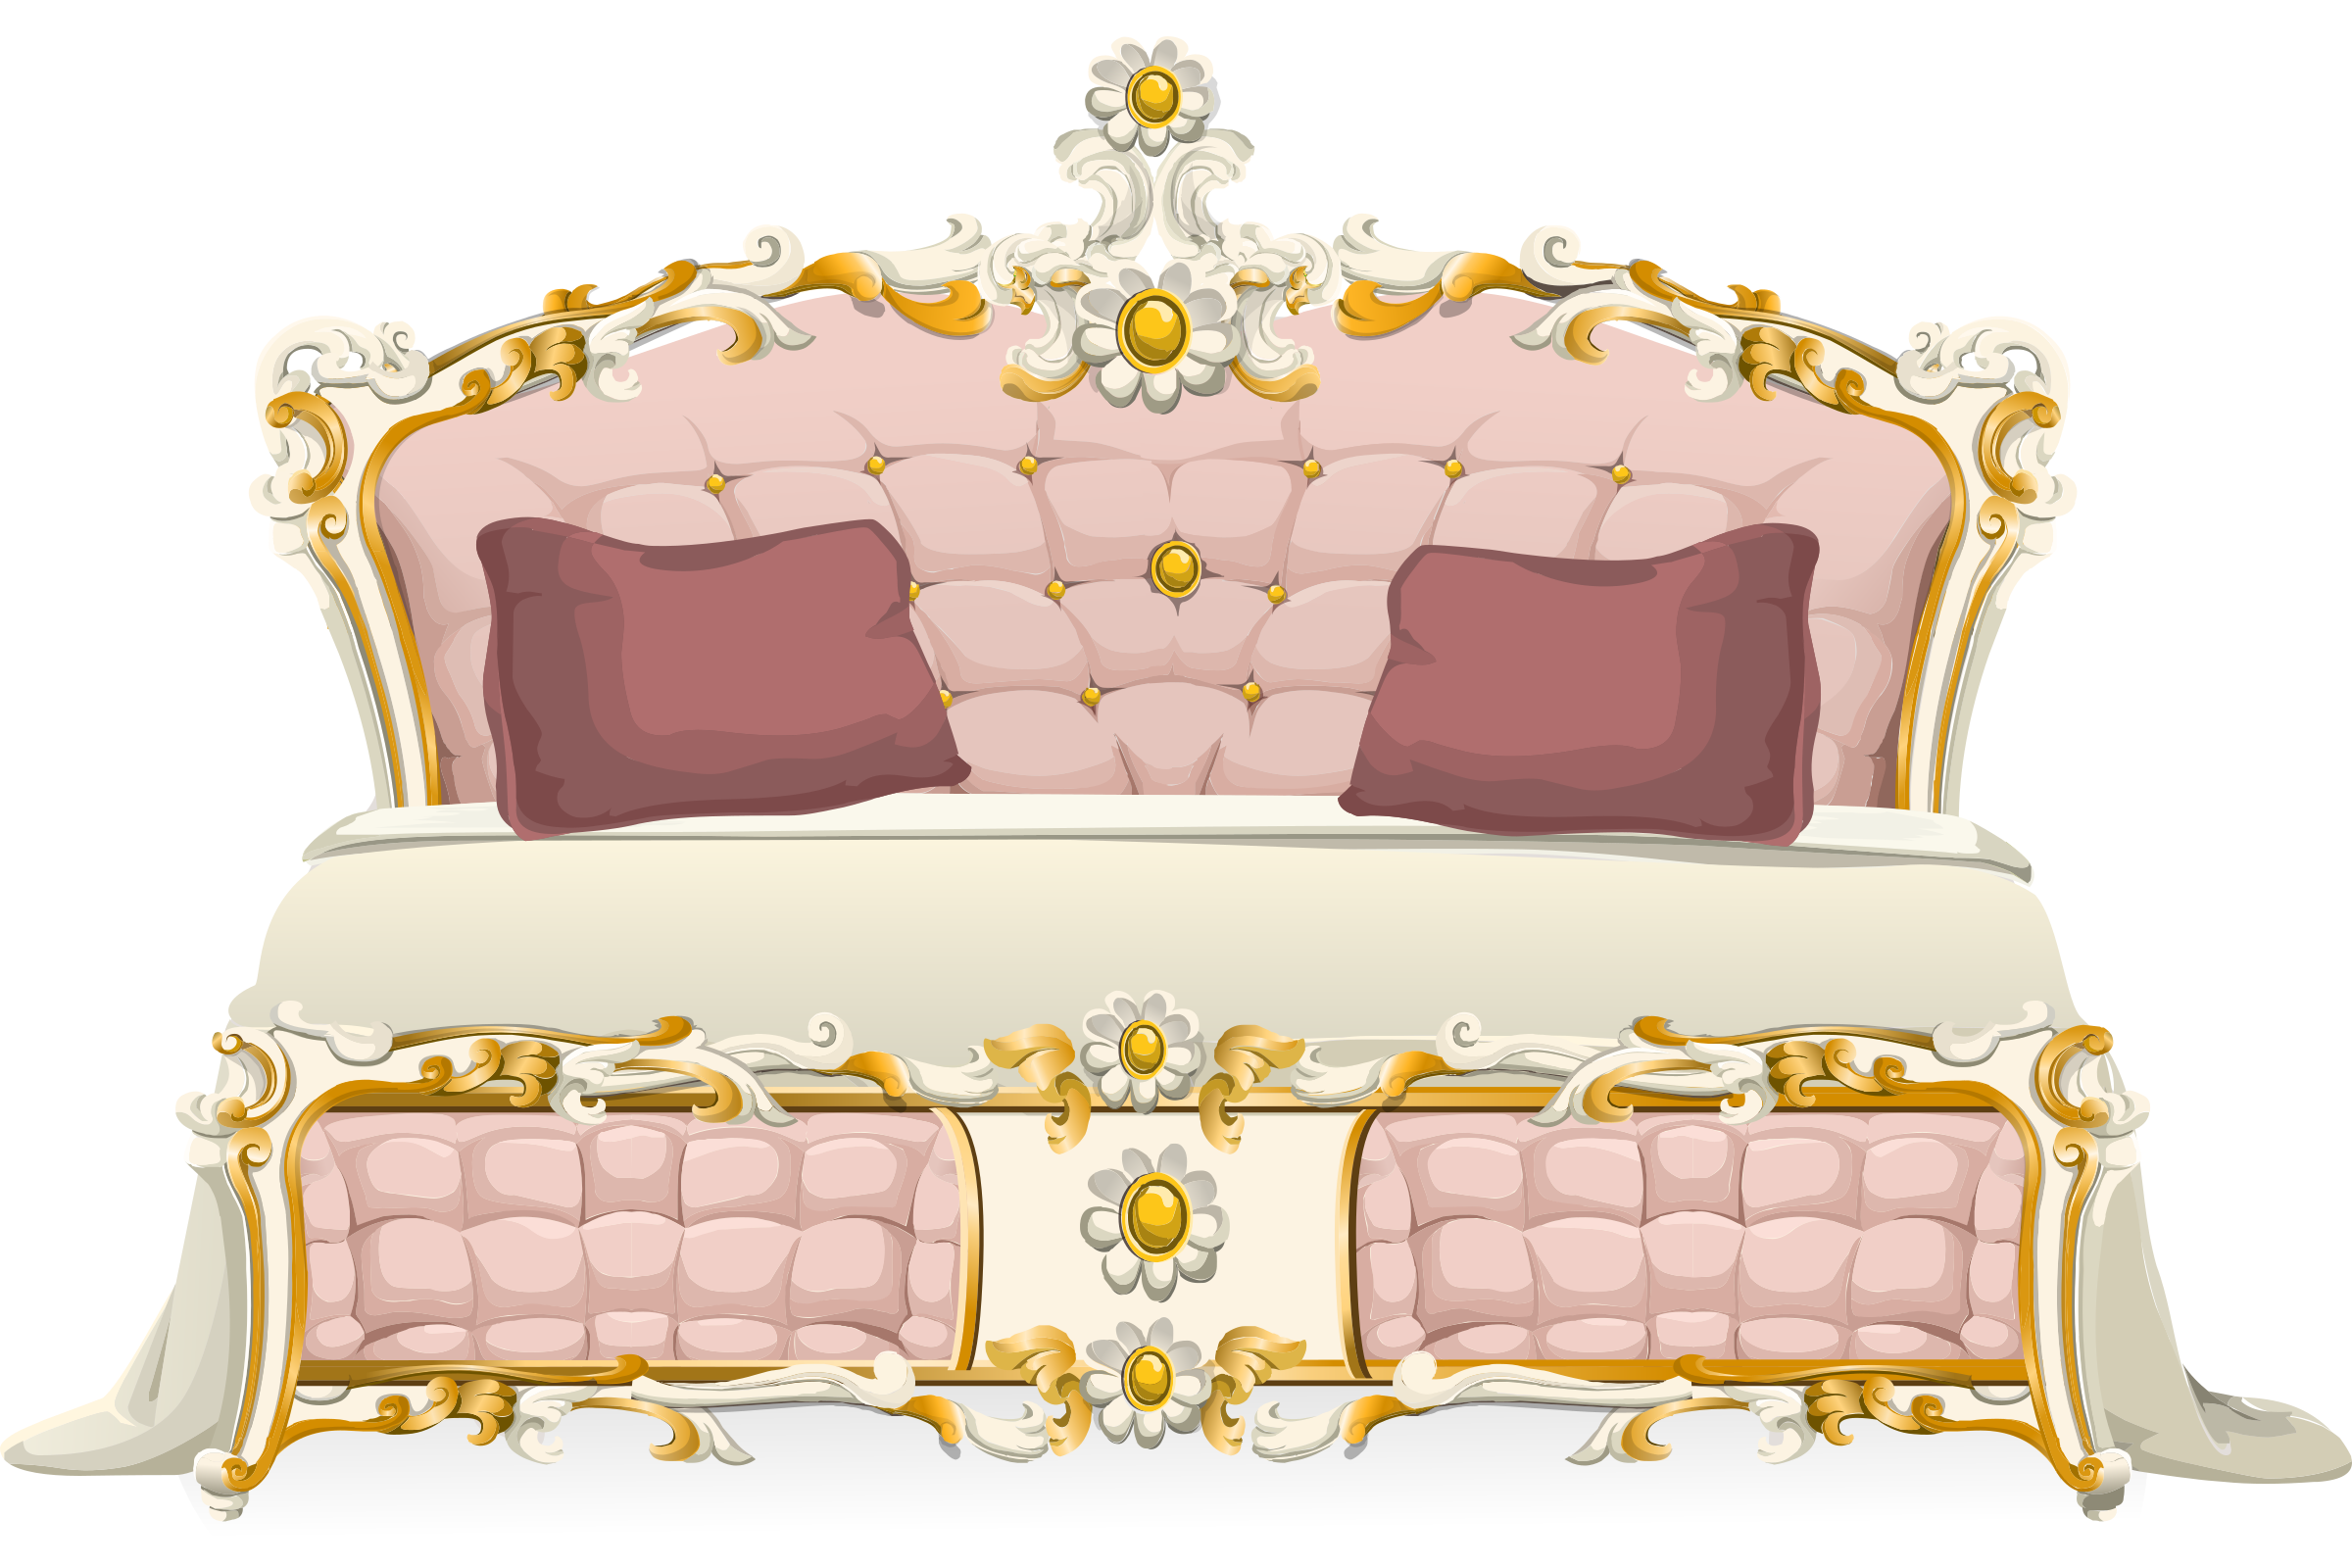 Furniture clipart pink lamp. Baroque bed from glitch